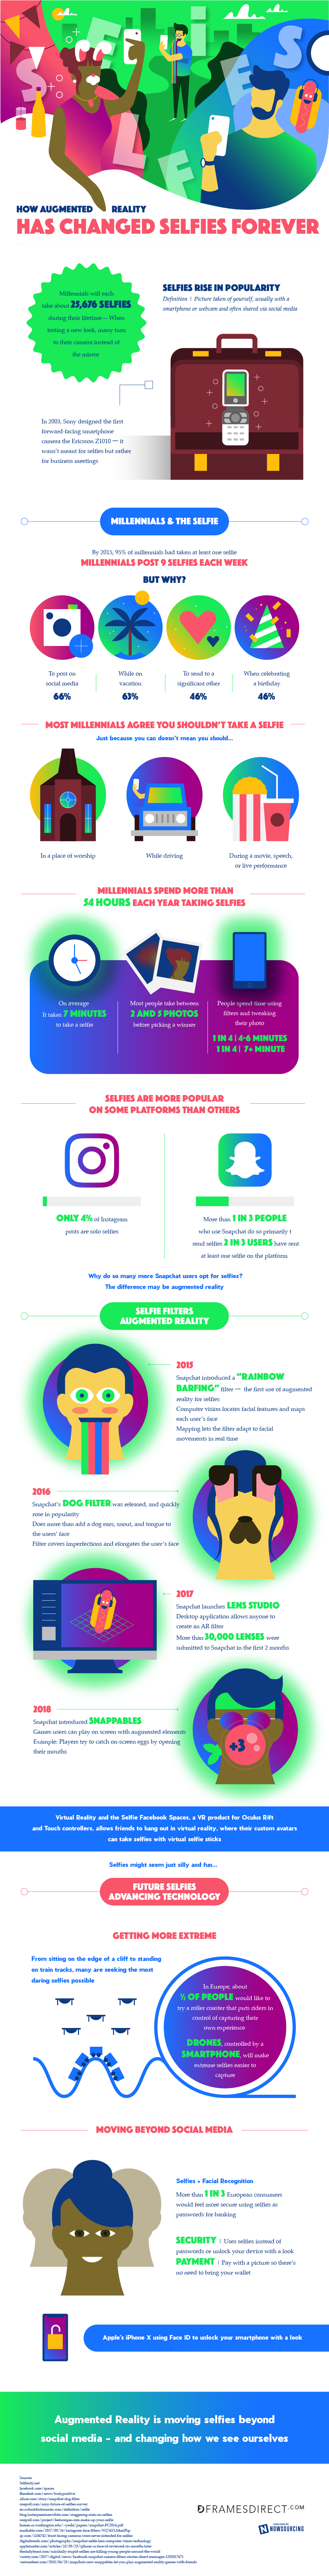 Infographic looks at the rising use of AR tools with selfies